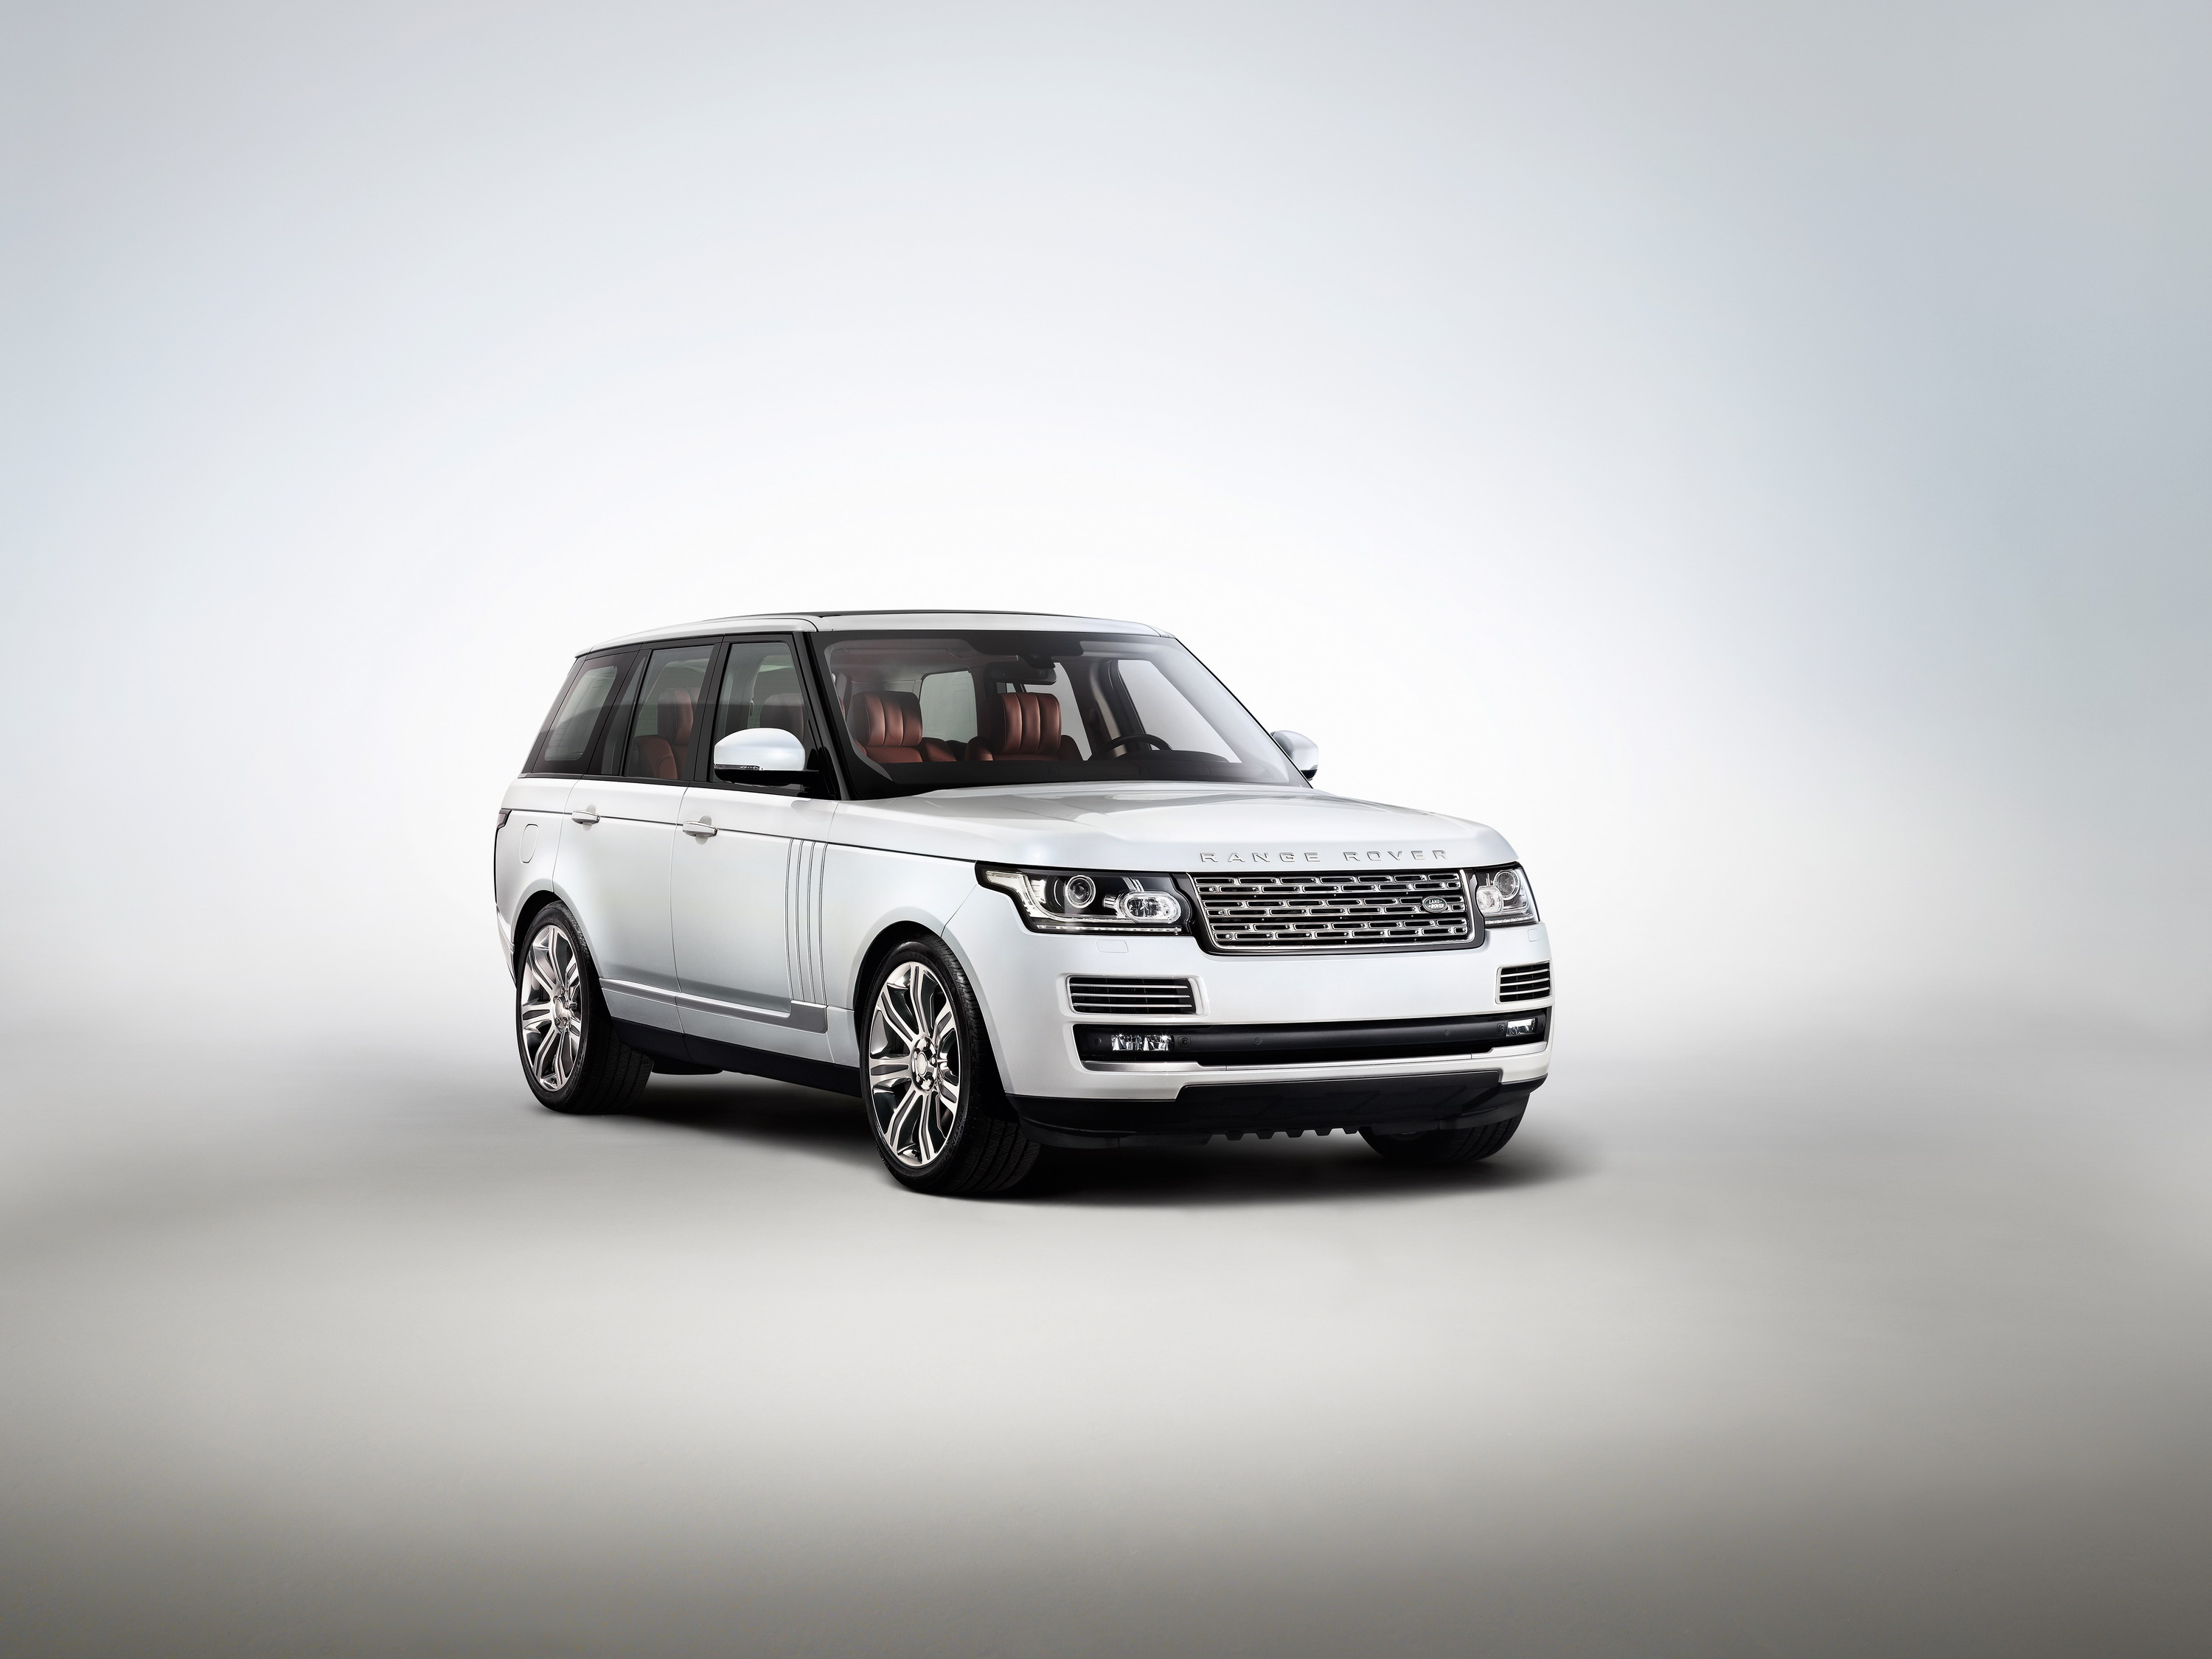 2014 Land Rover Range Rover Autobiography Black Review Gallery